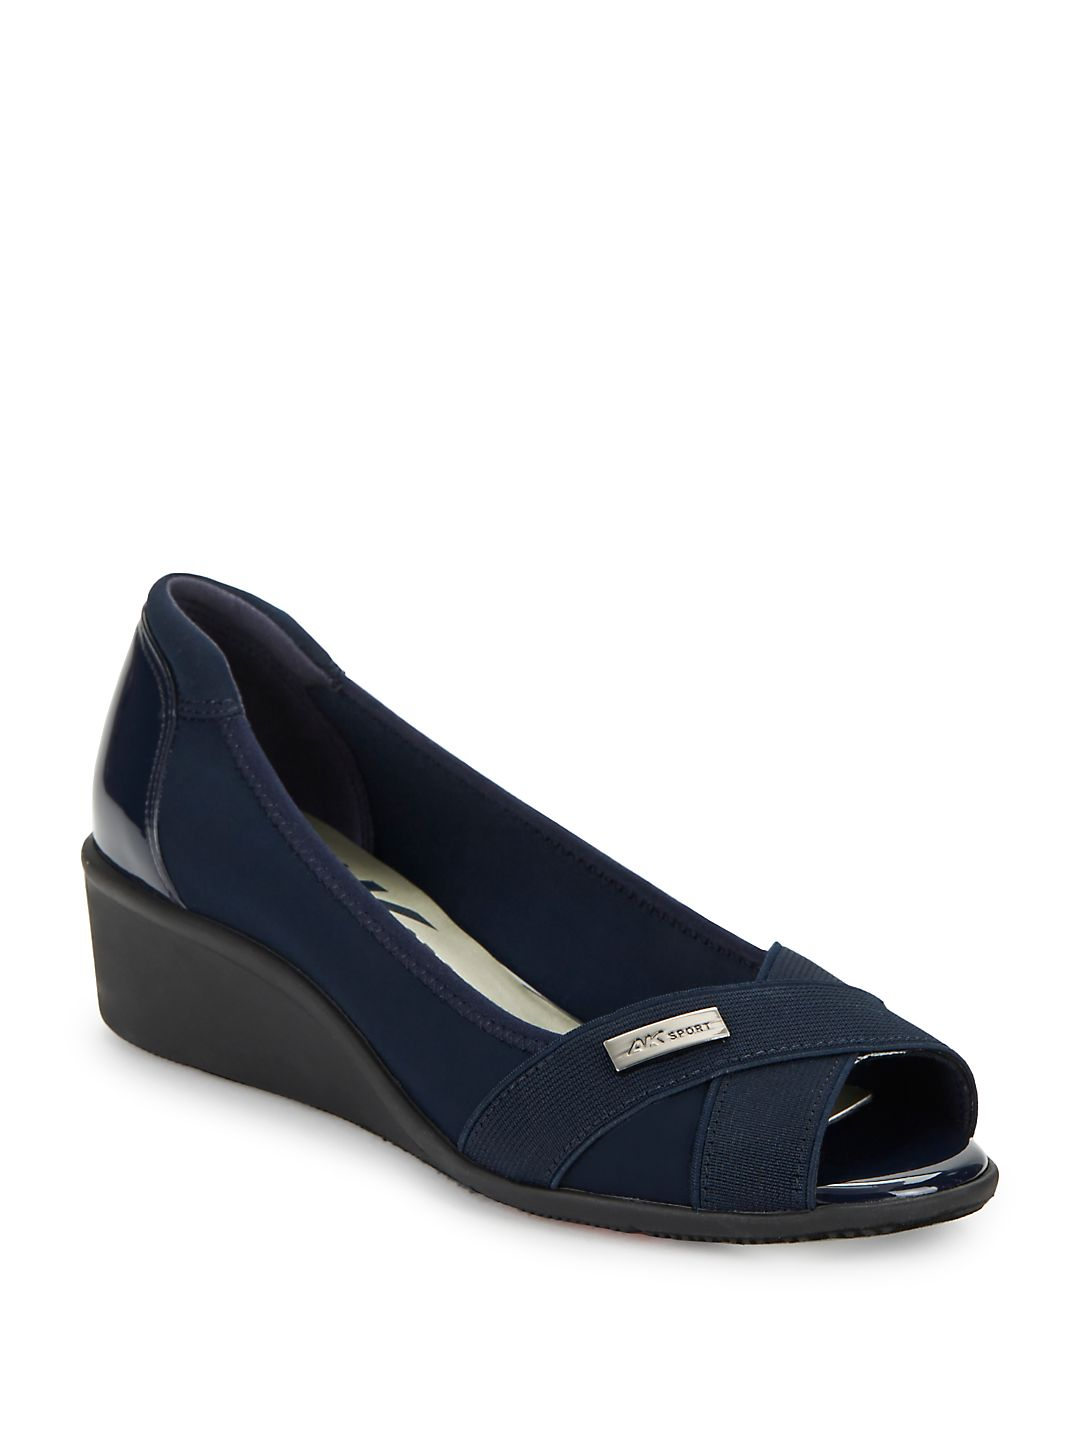 Jetta Fabric Wedge Pumps